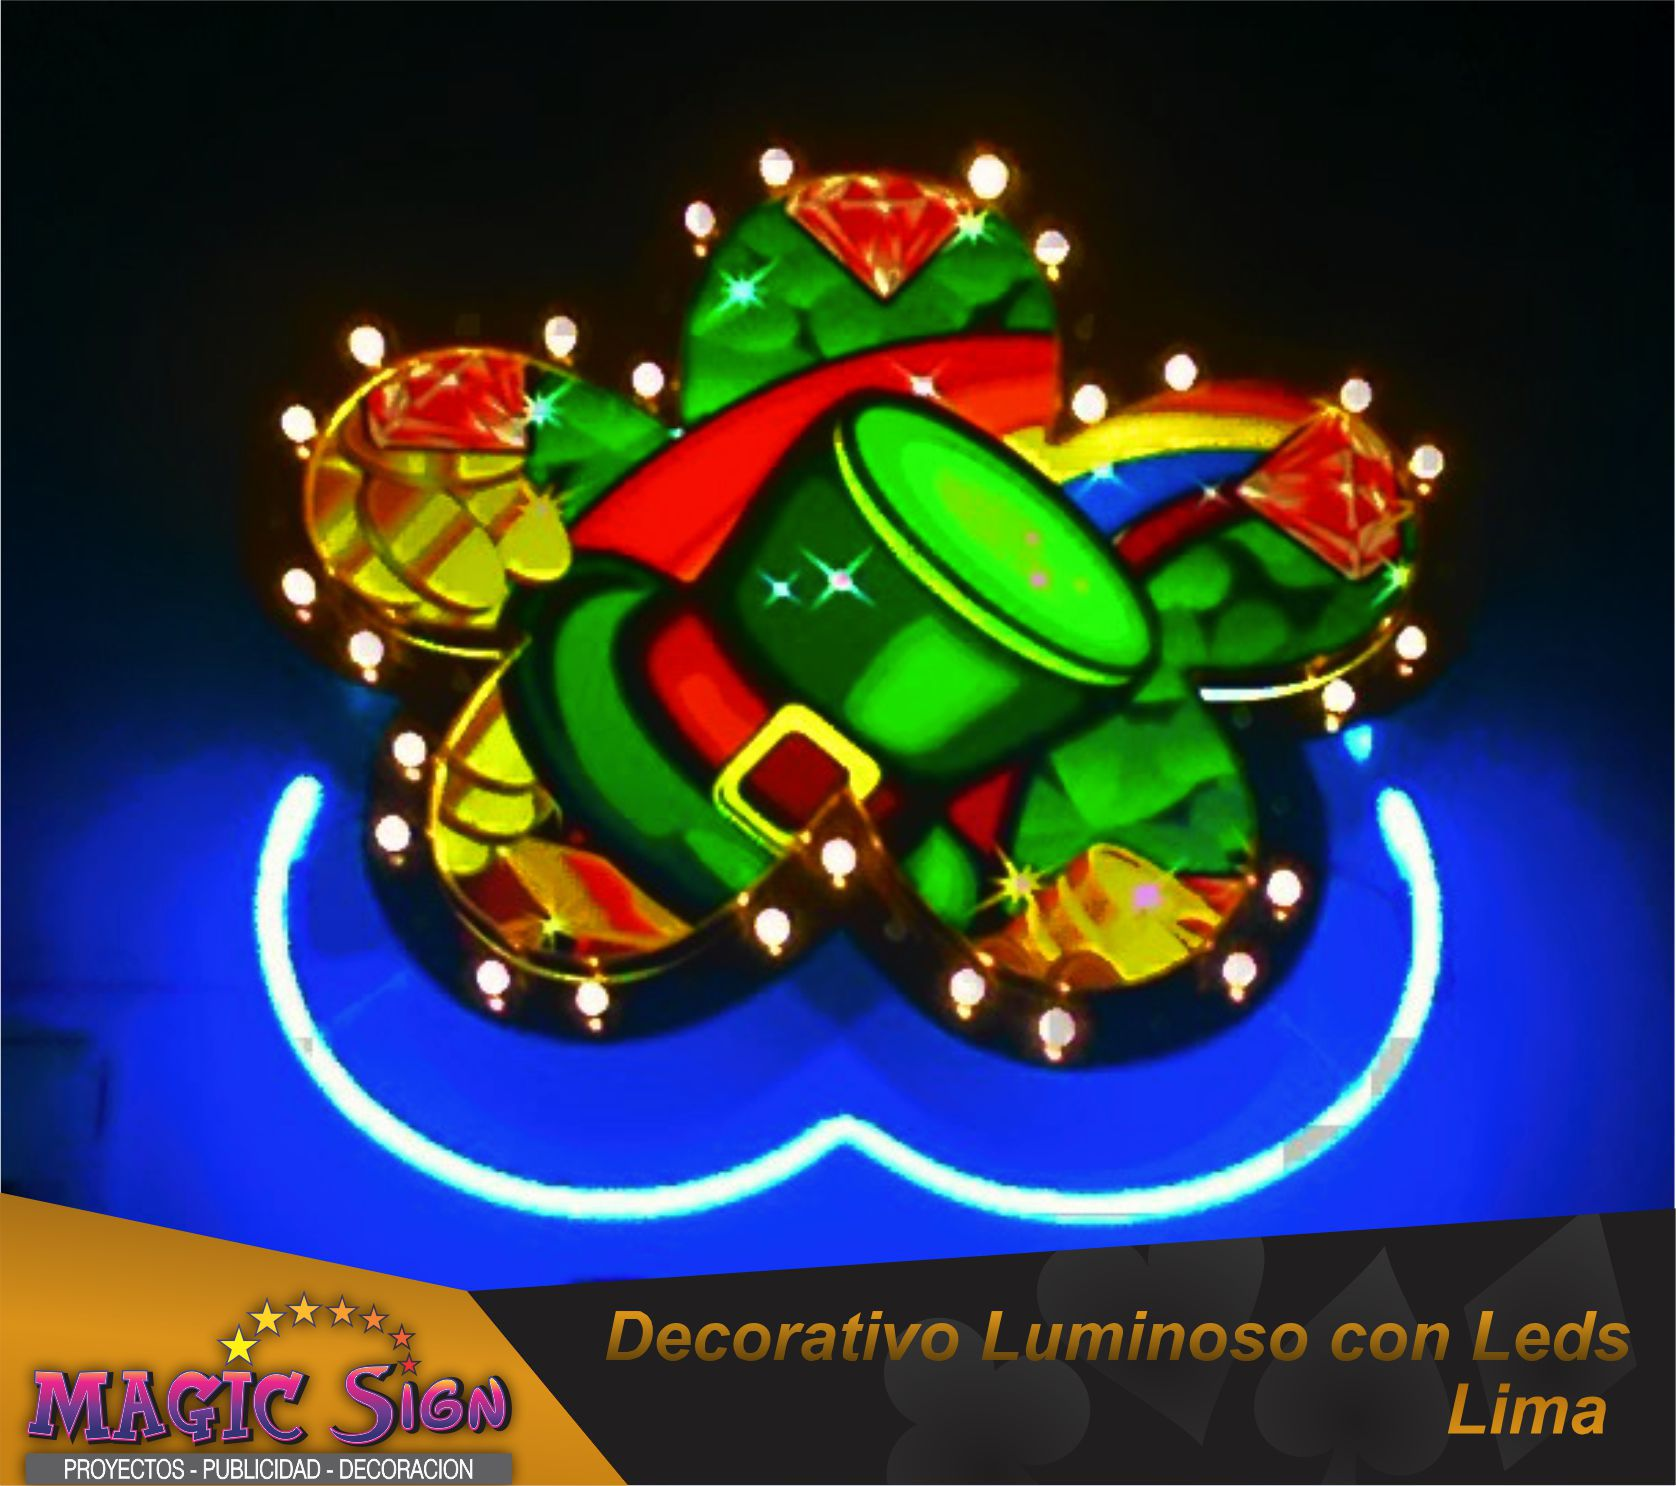 DECORATIVO LUMINOSO para casino